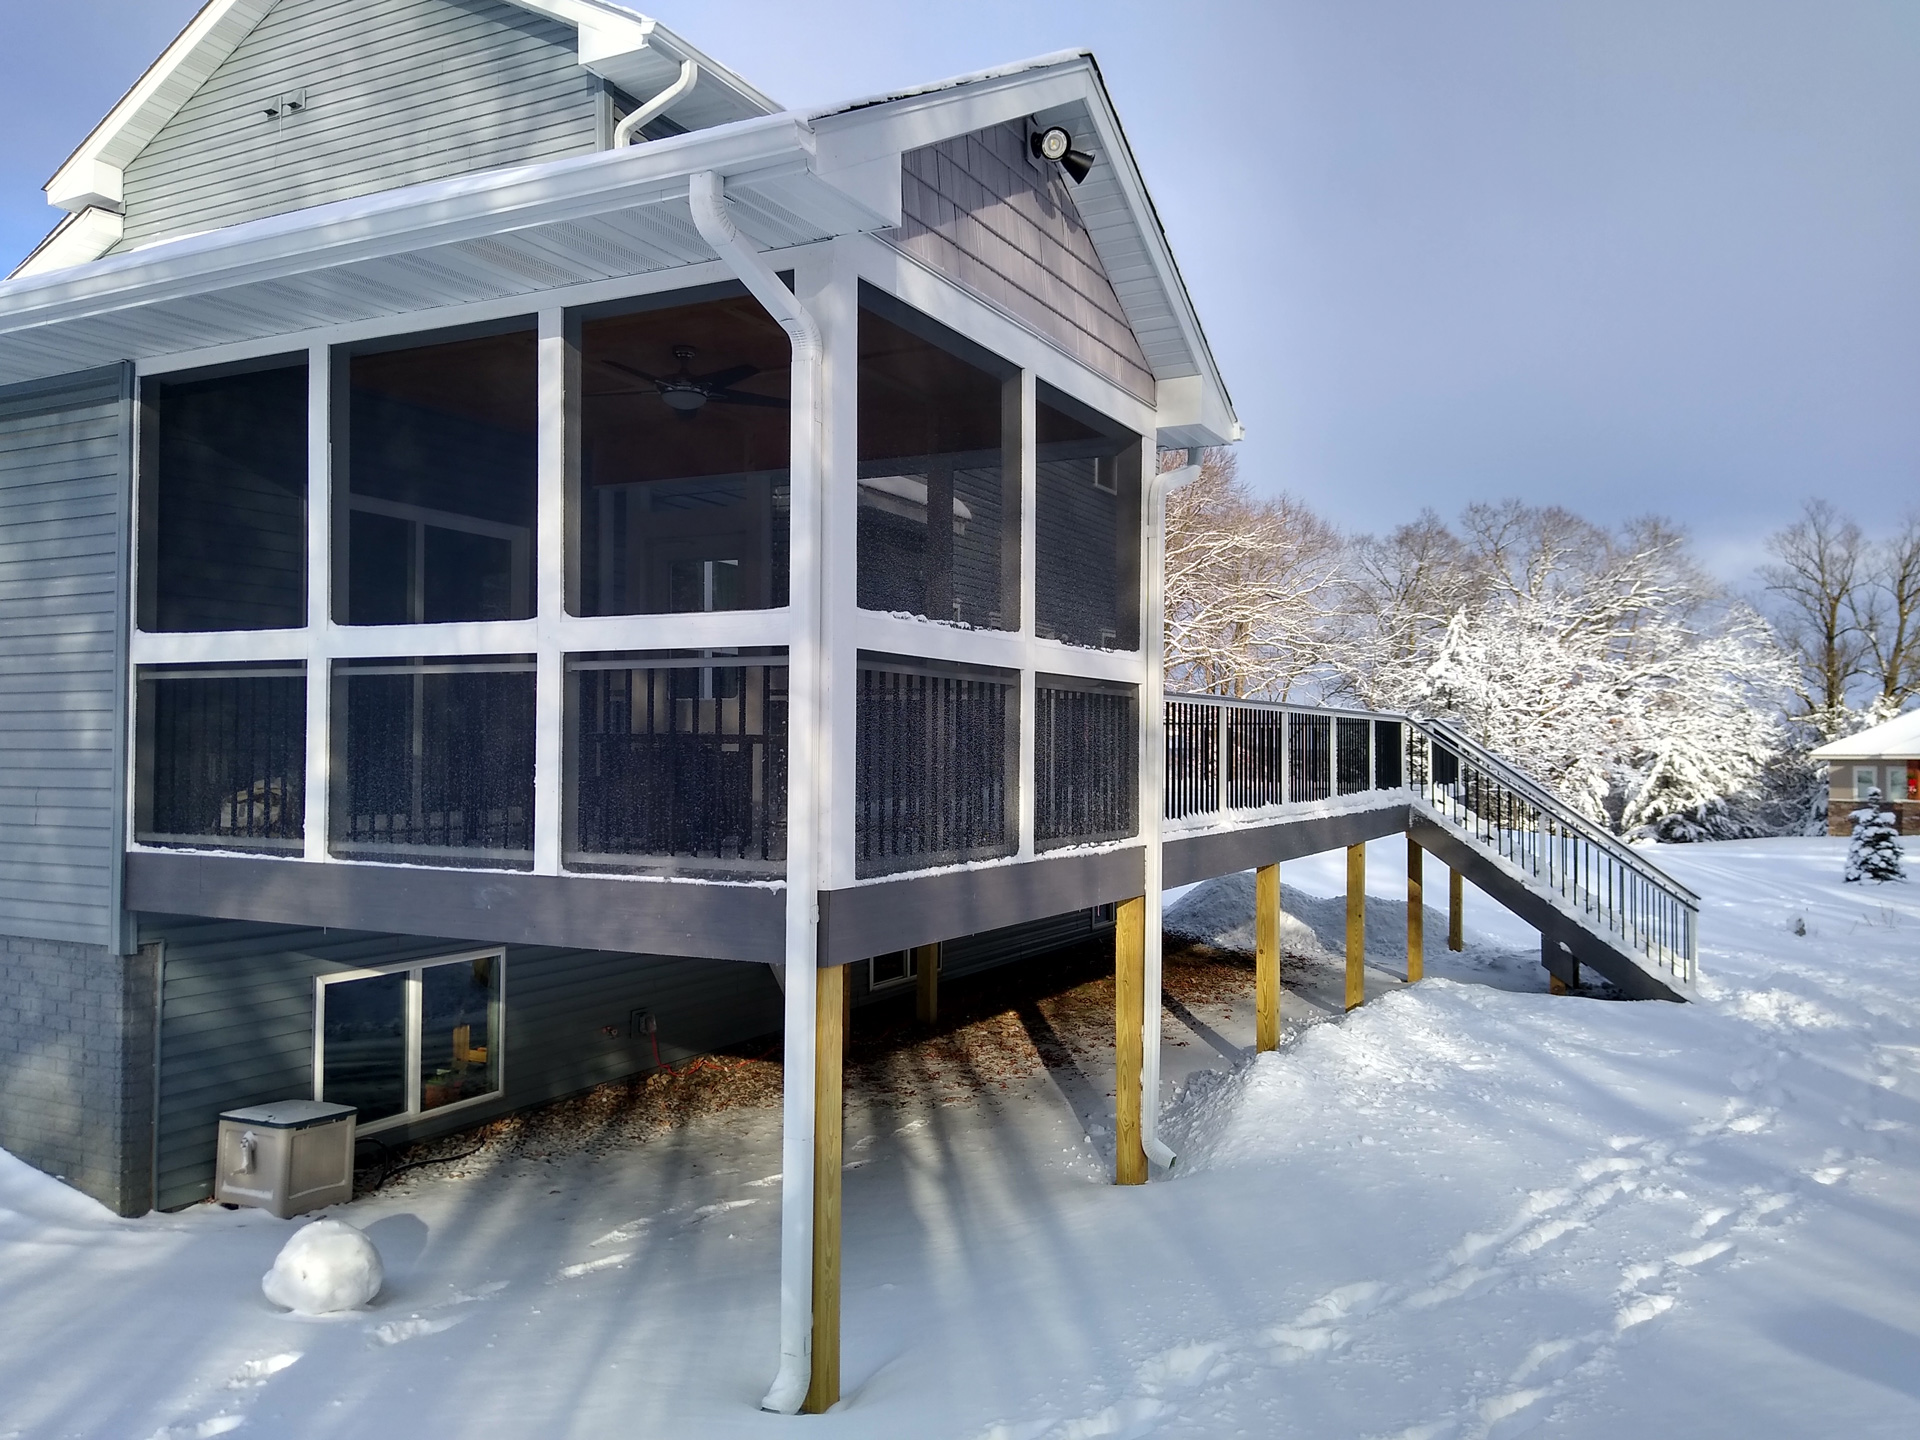 Screen porch addition with snow on grass